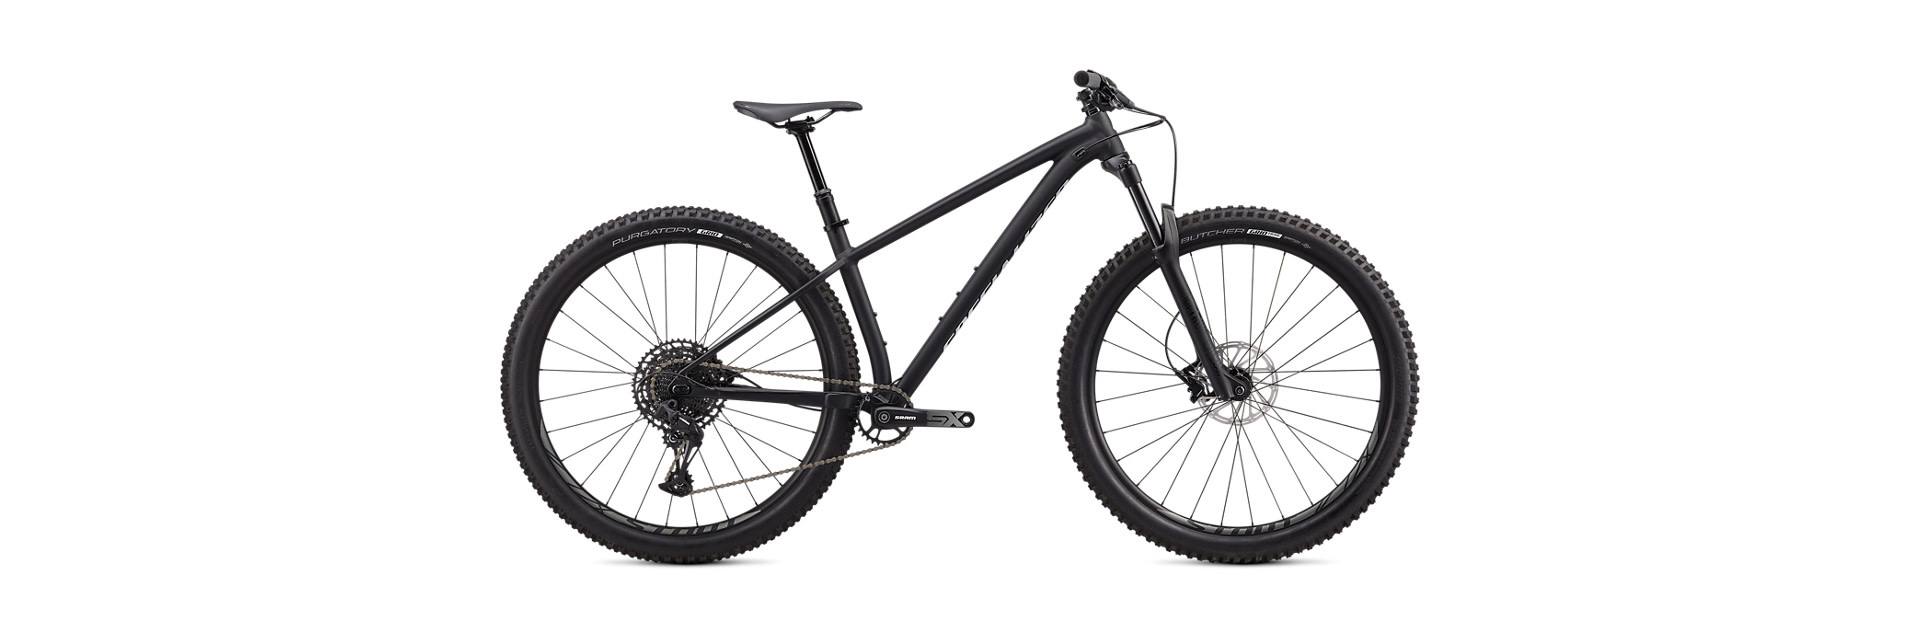 SPECIALIZED 2020 FUSE COMP 29 BLK/DOVGRY L